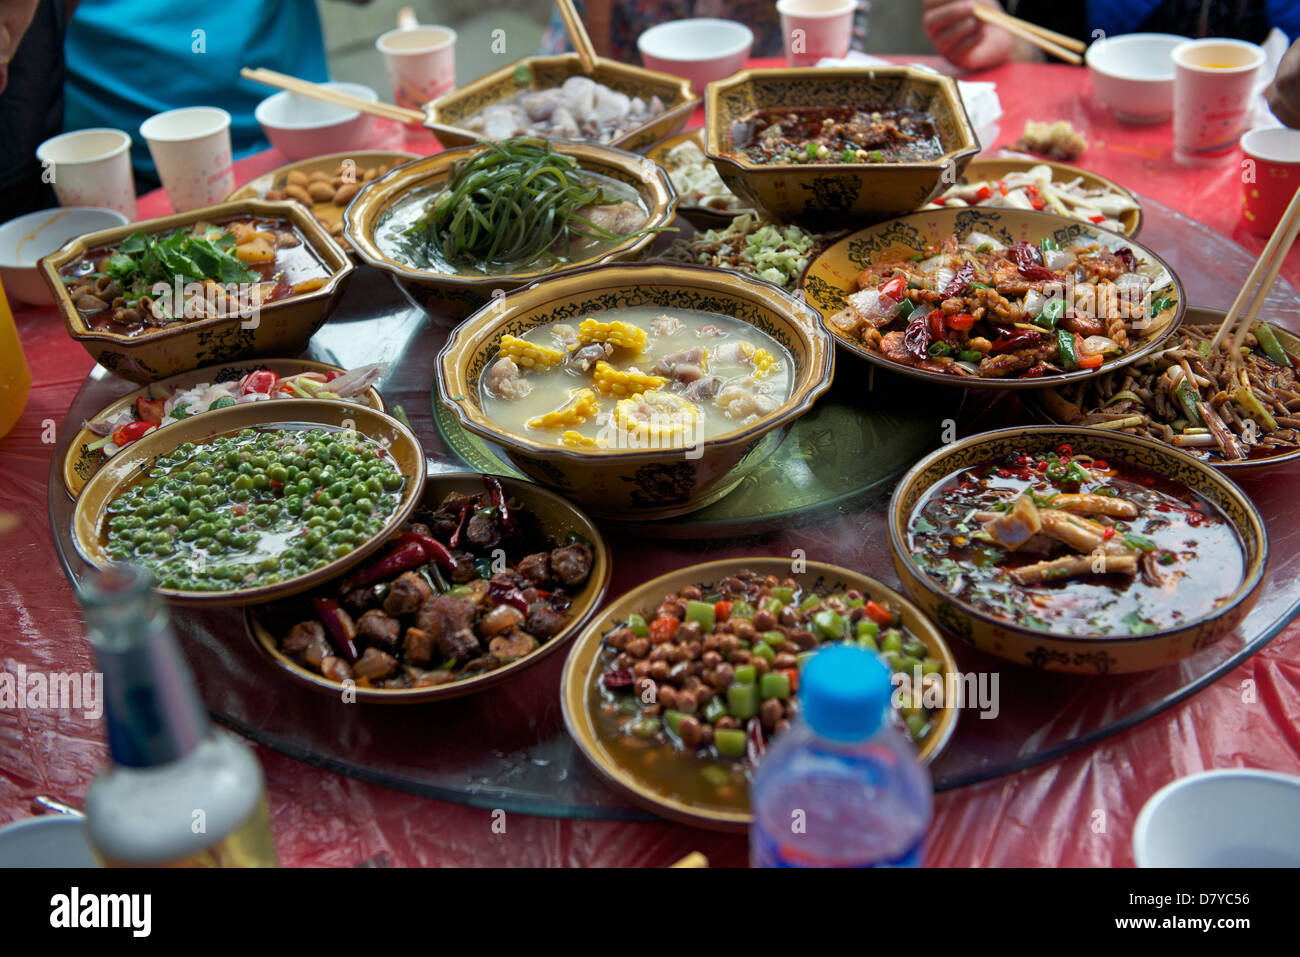 Wedding feast in rural Wenjiang, Chengdu, Sichuan, China.06-May-2013 - Stock Image